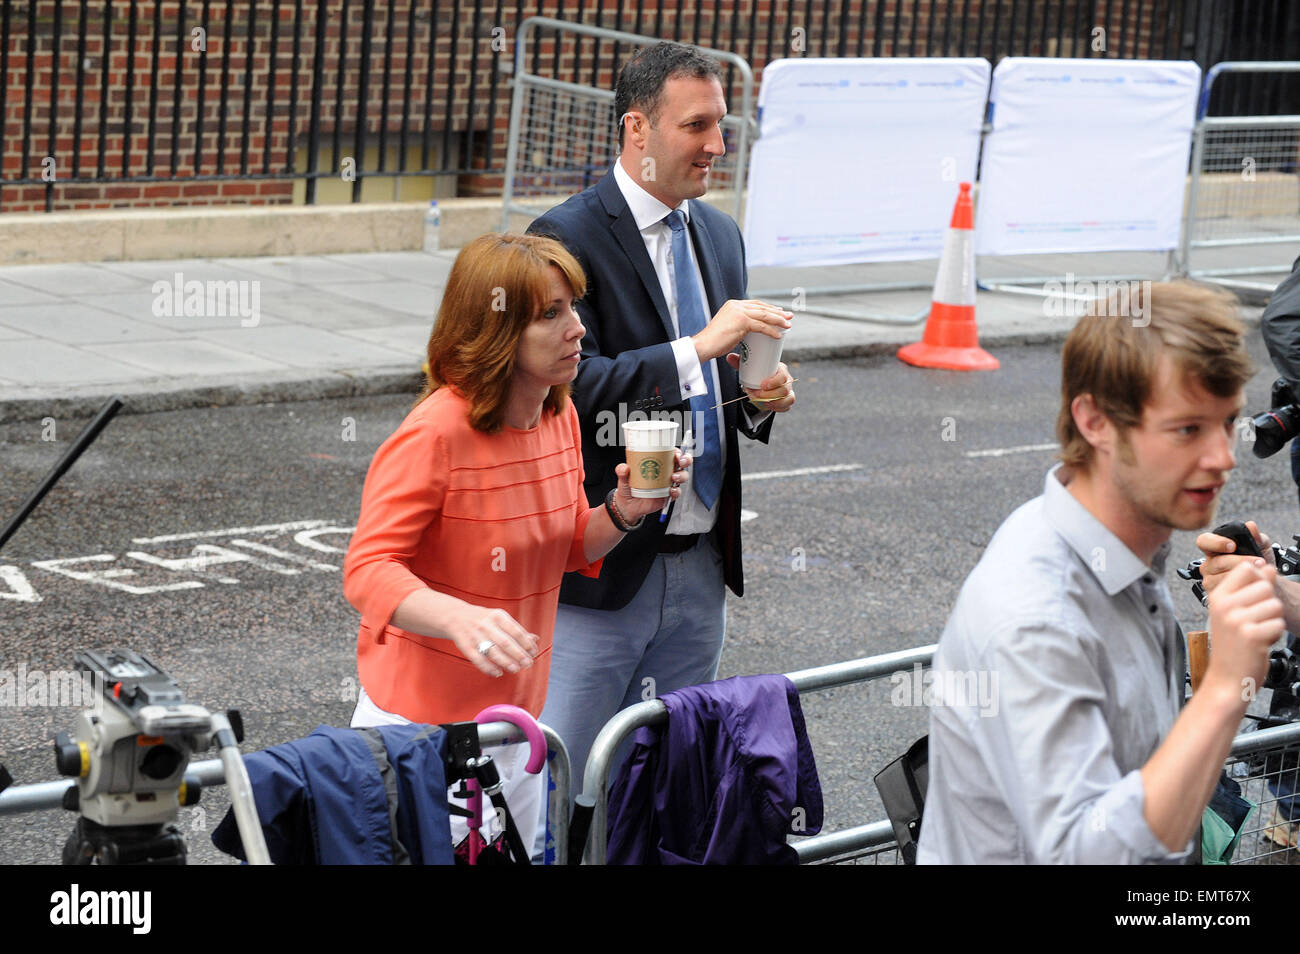 23.JULY.2013. LONDON  SPECTATORS AND PRESS GATHERED AT ST MARY'S HOSPITAL IN ANTICIPATION OF KATE MIDDLETON'S - Stock Image